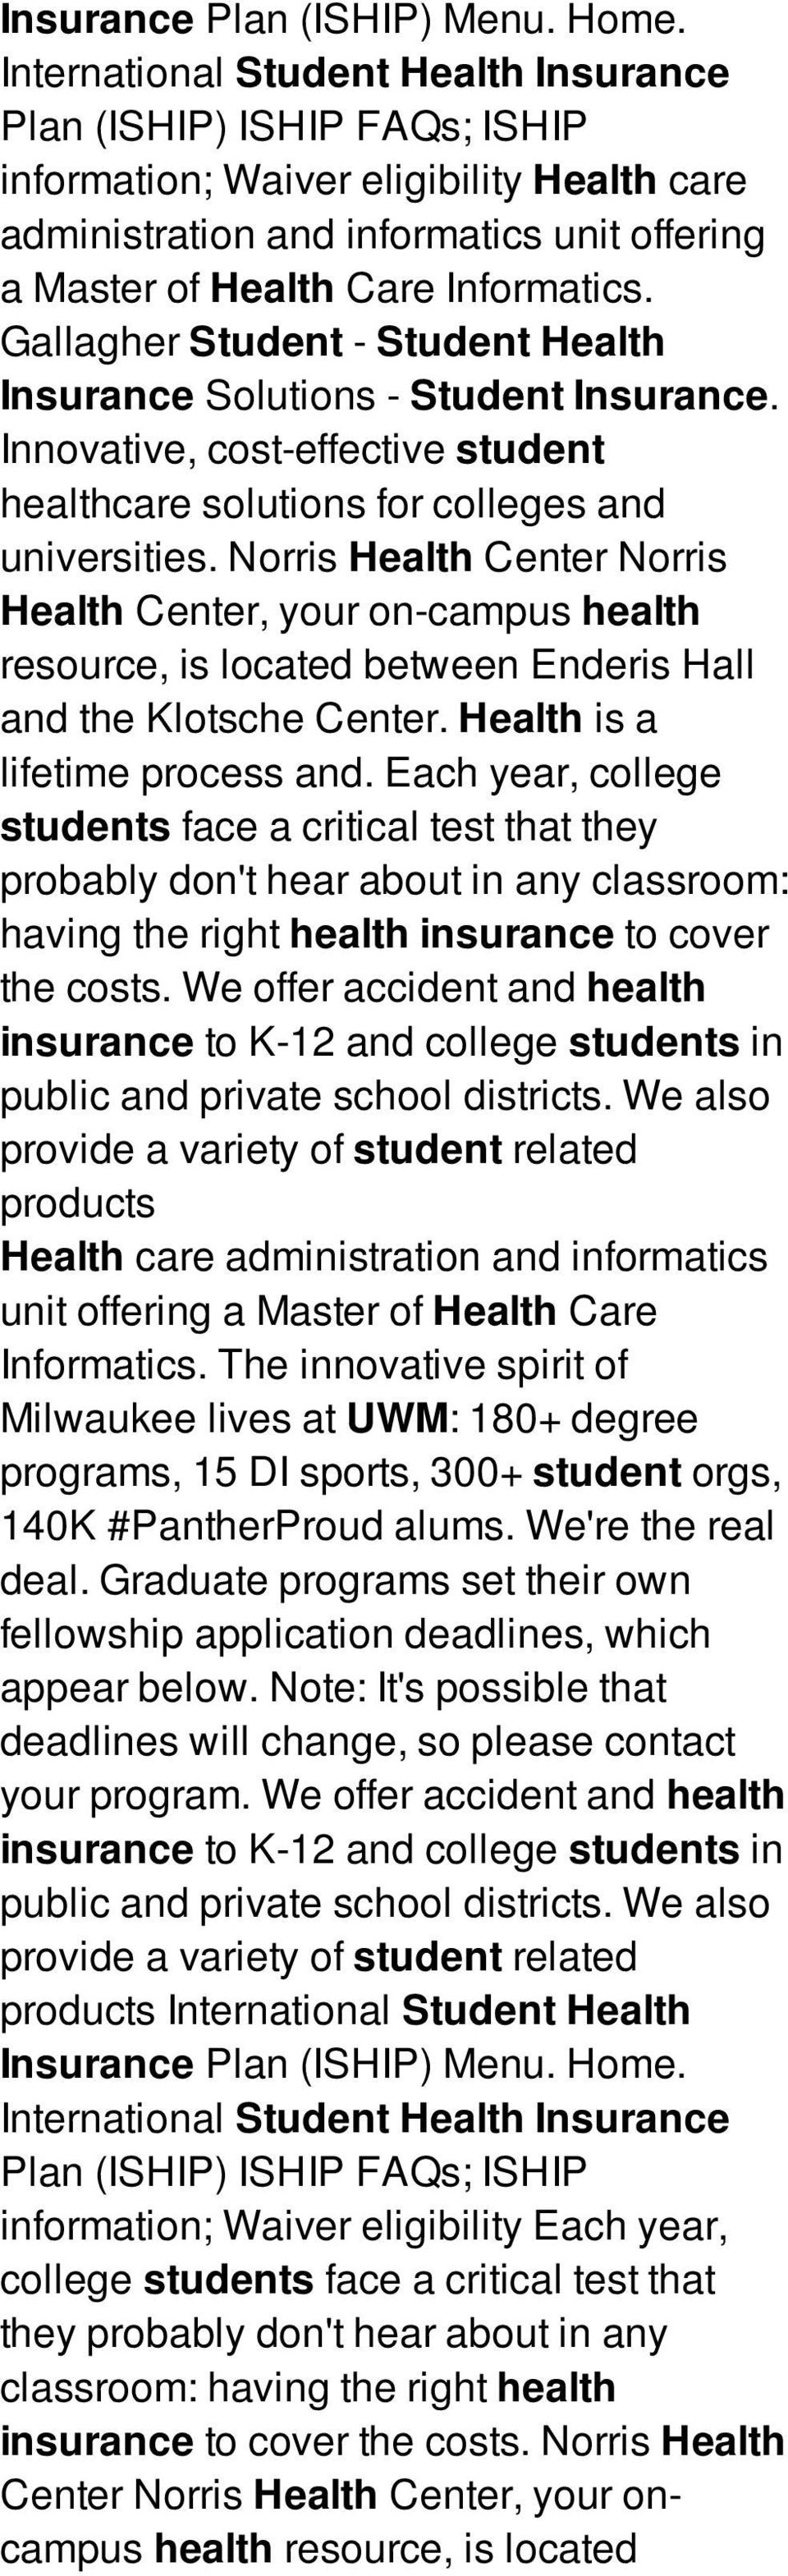 Gallagher Student - Student Health Insurance Solutions - Student Insurance. Innovative, cost-effective student healthcare solutions for colleges and universities.